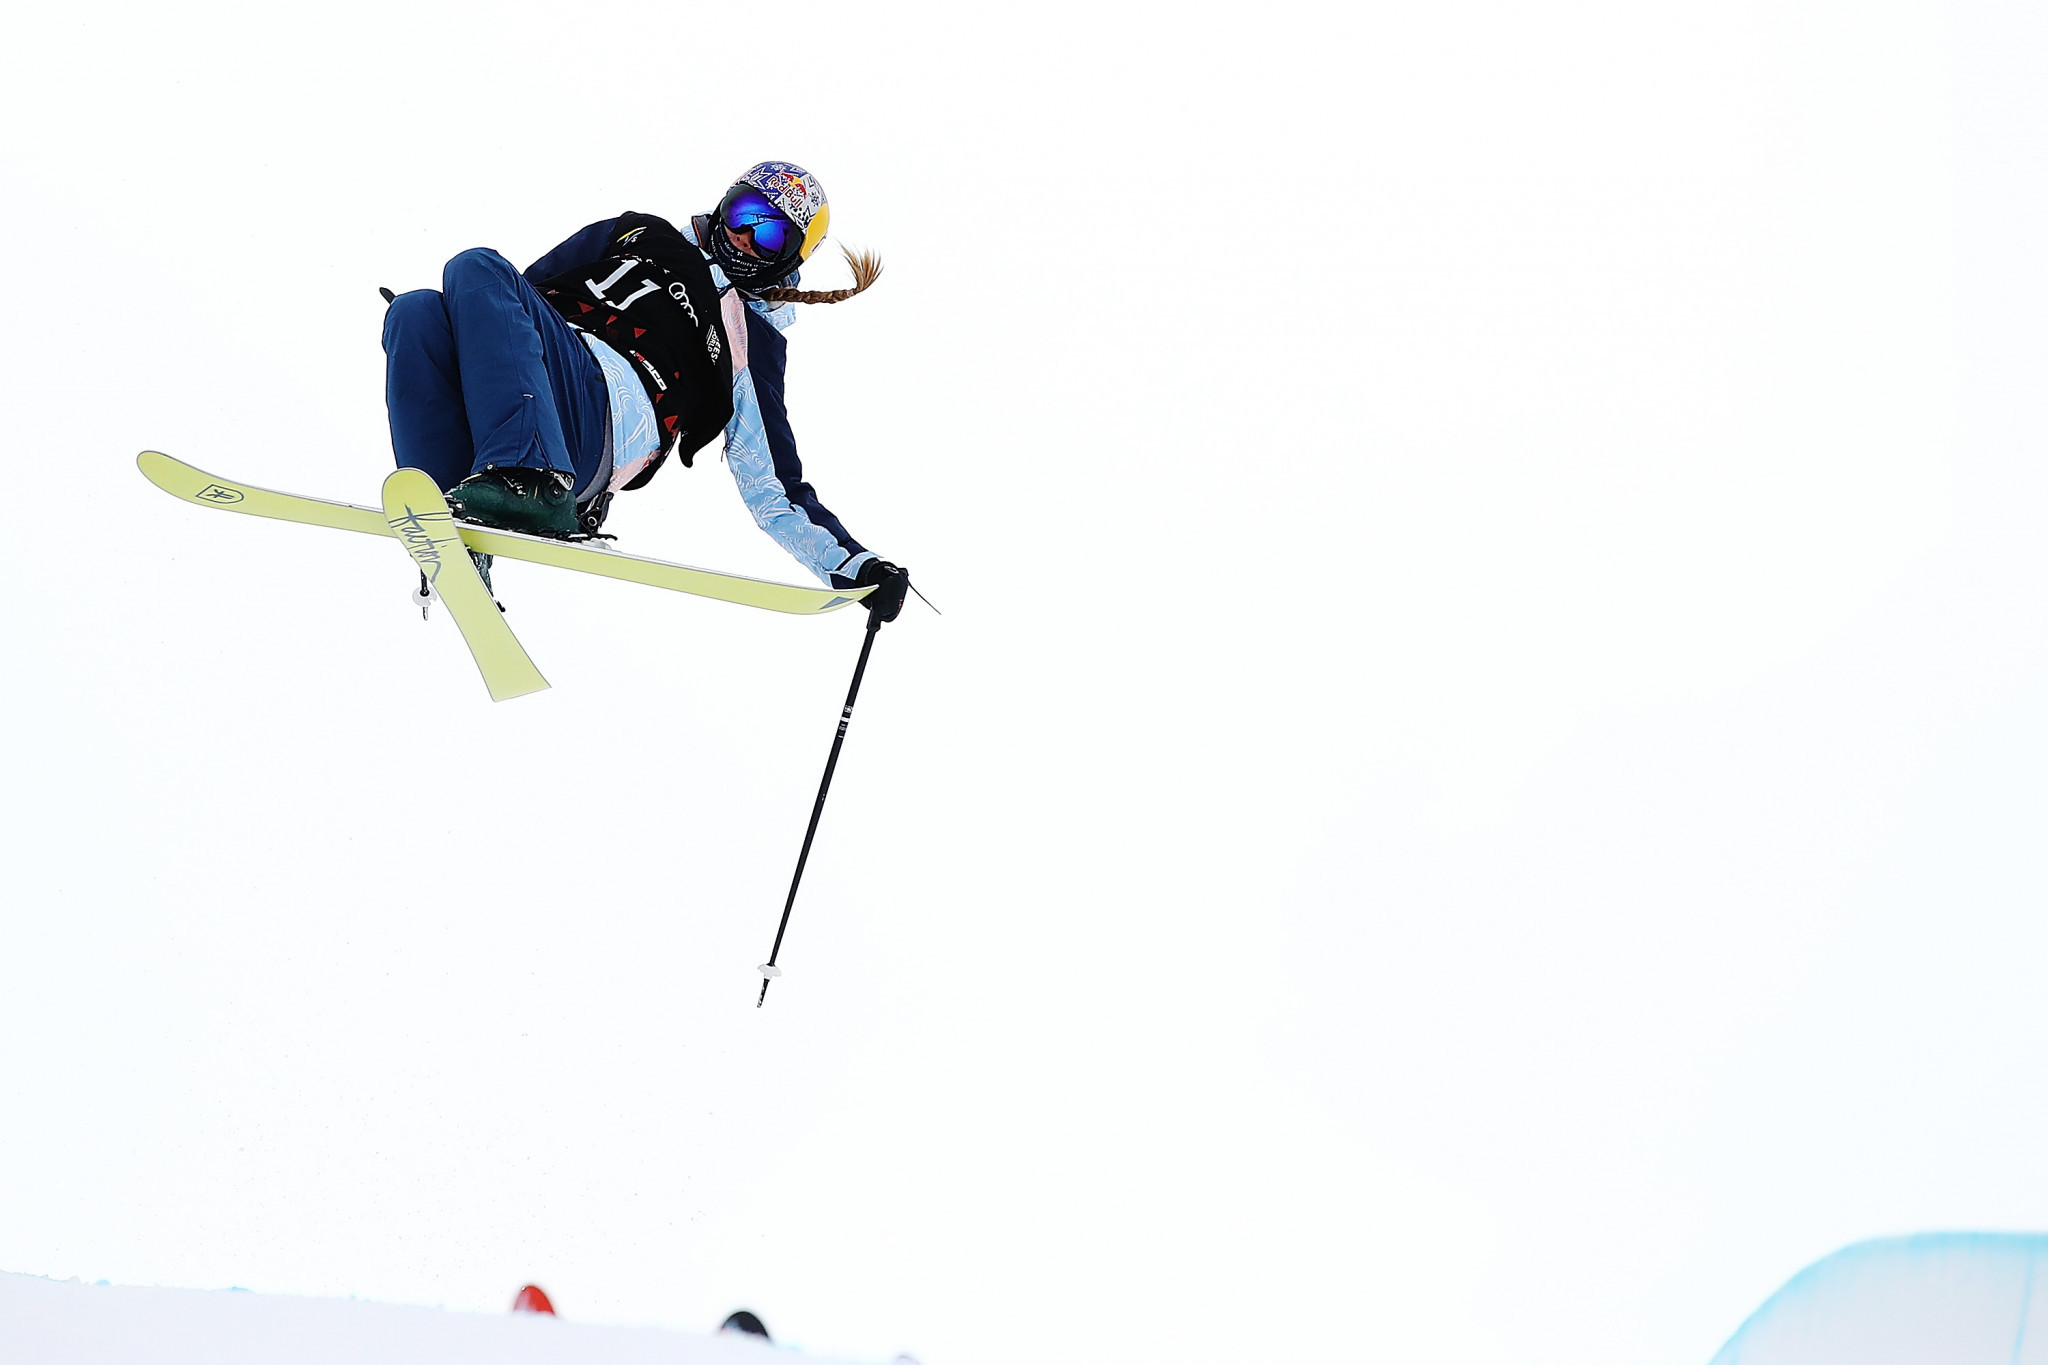 Sildaru tops women's slopestyle qualification round at Freestyle Skiing World Cup